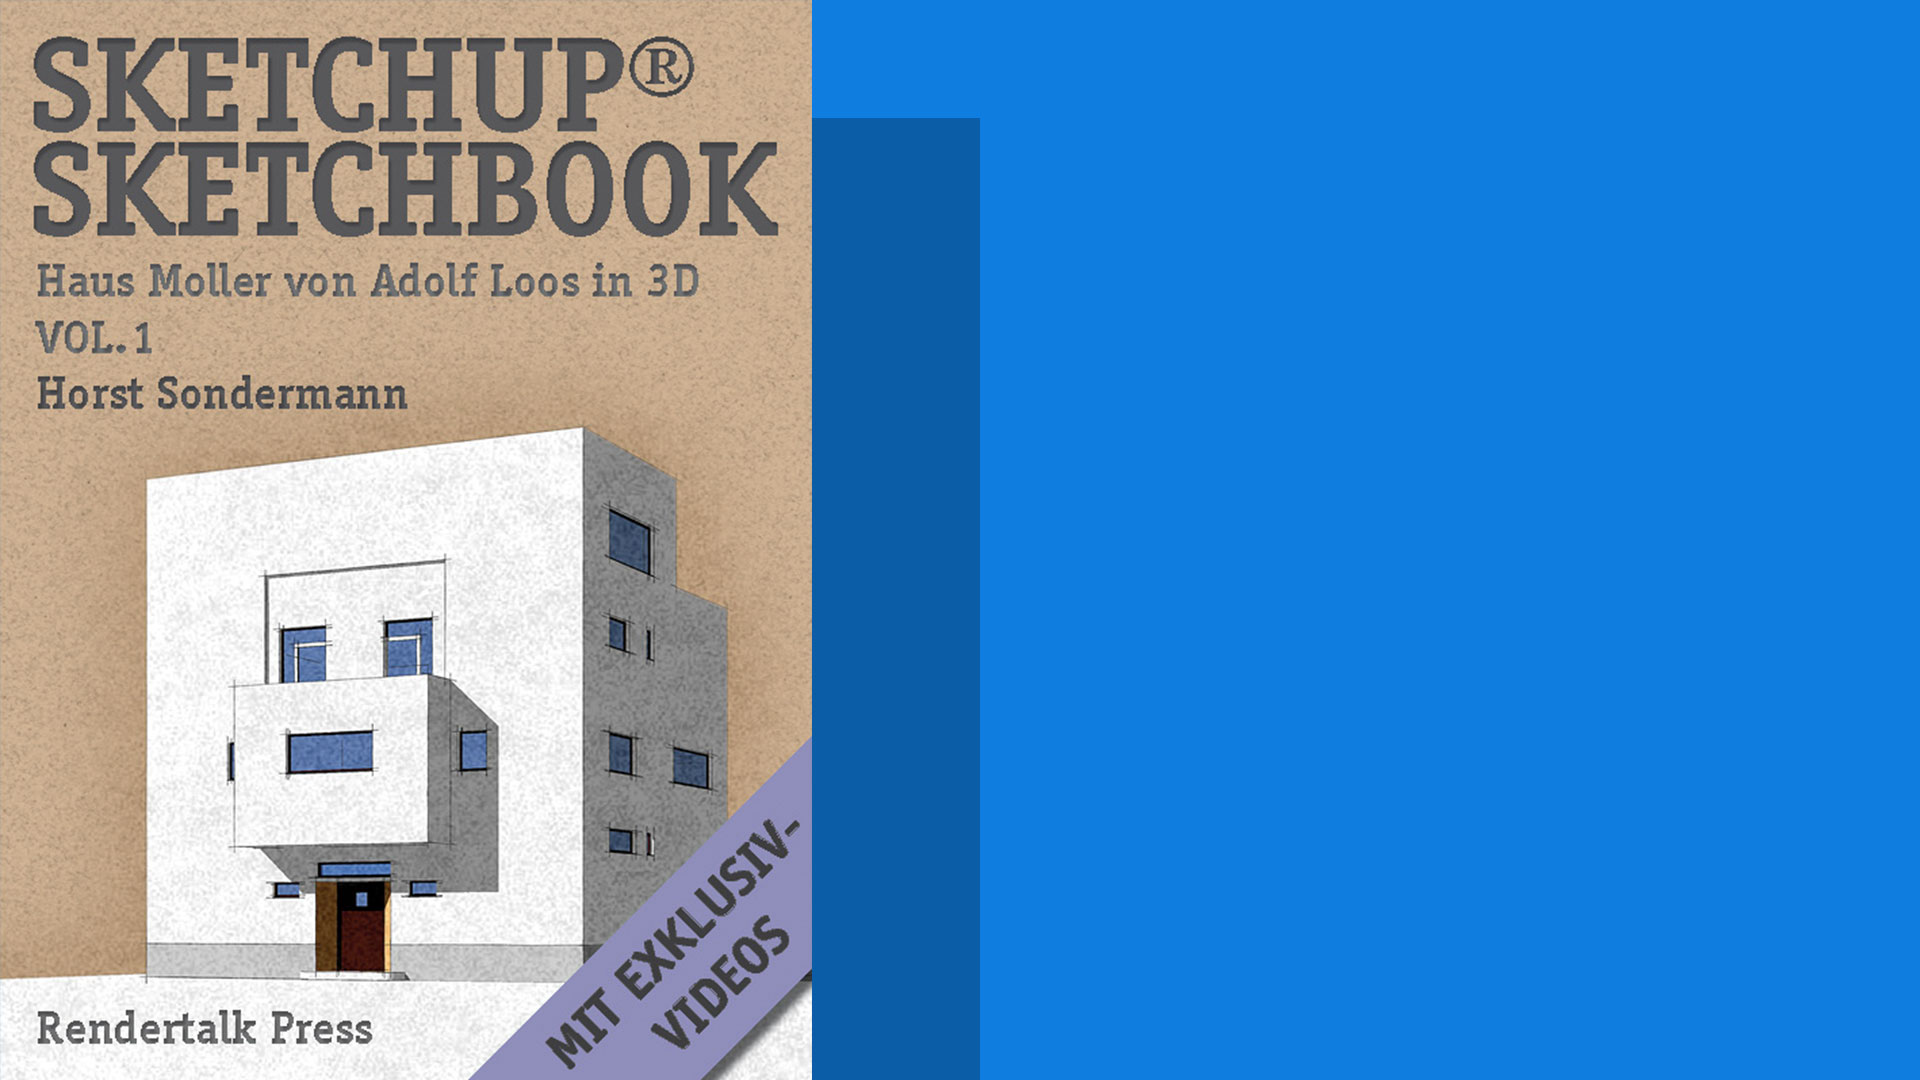 Horst Sondermann SketchUp Sketchbook Vol 1 Architektur Modell Ebook amazon deutsch 2011